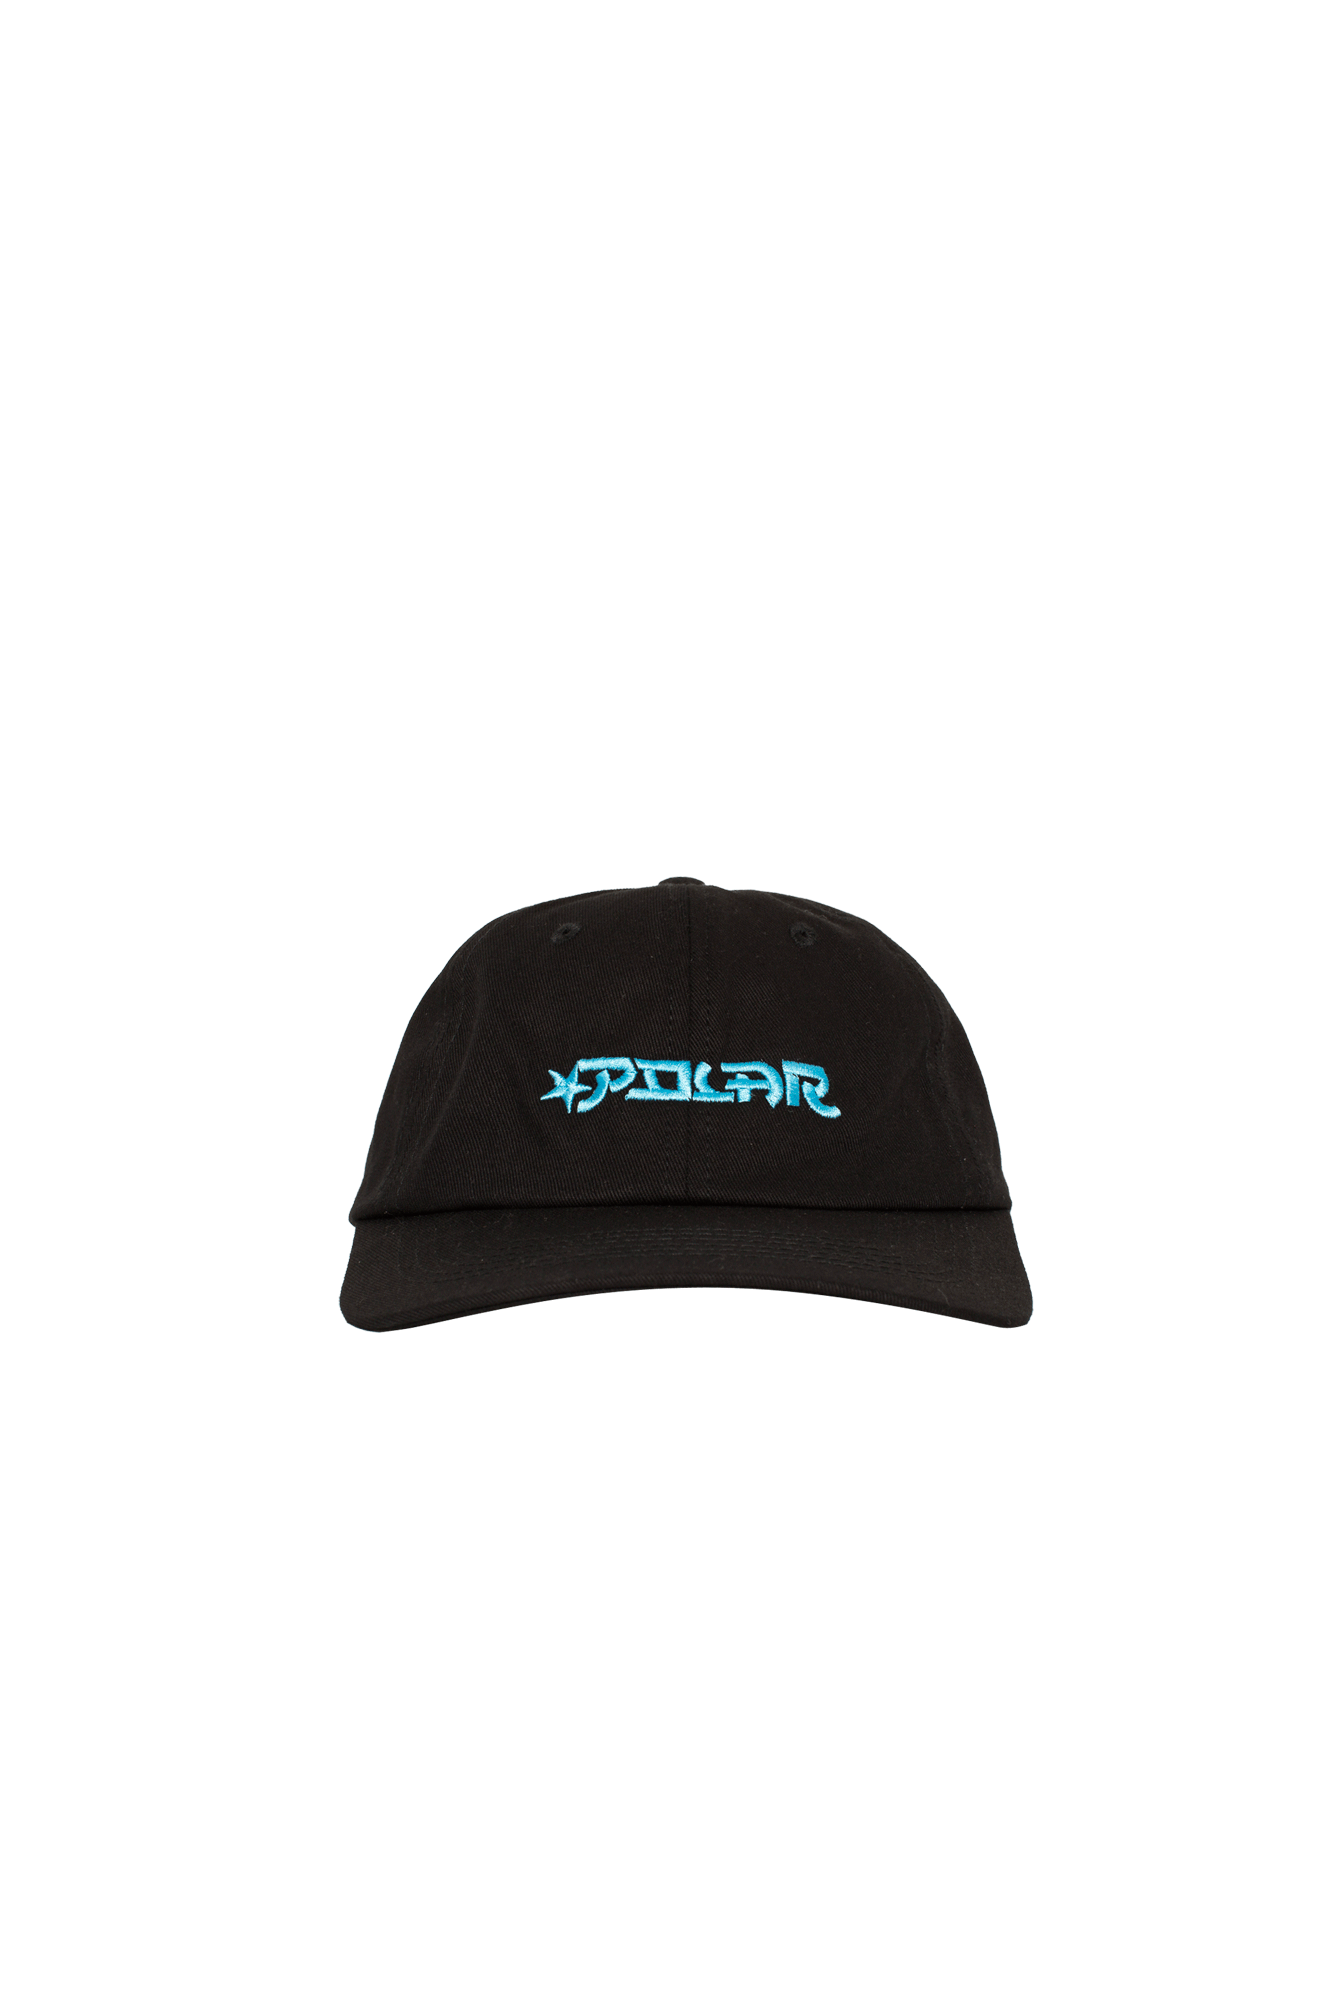 STAR CAP Black